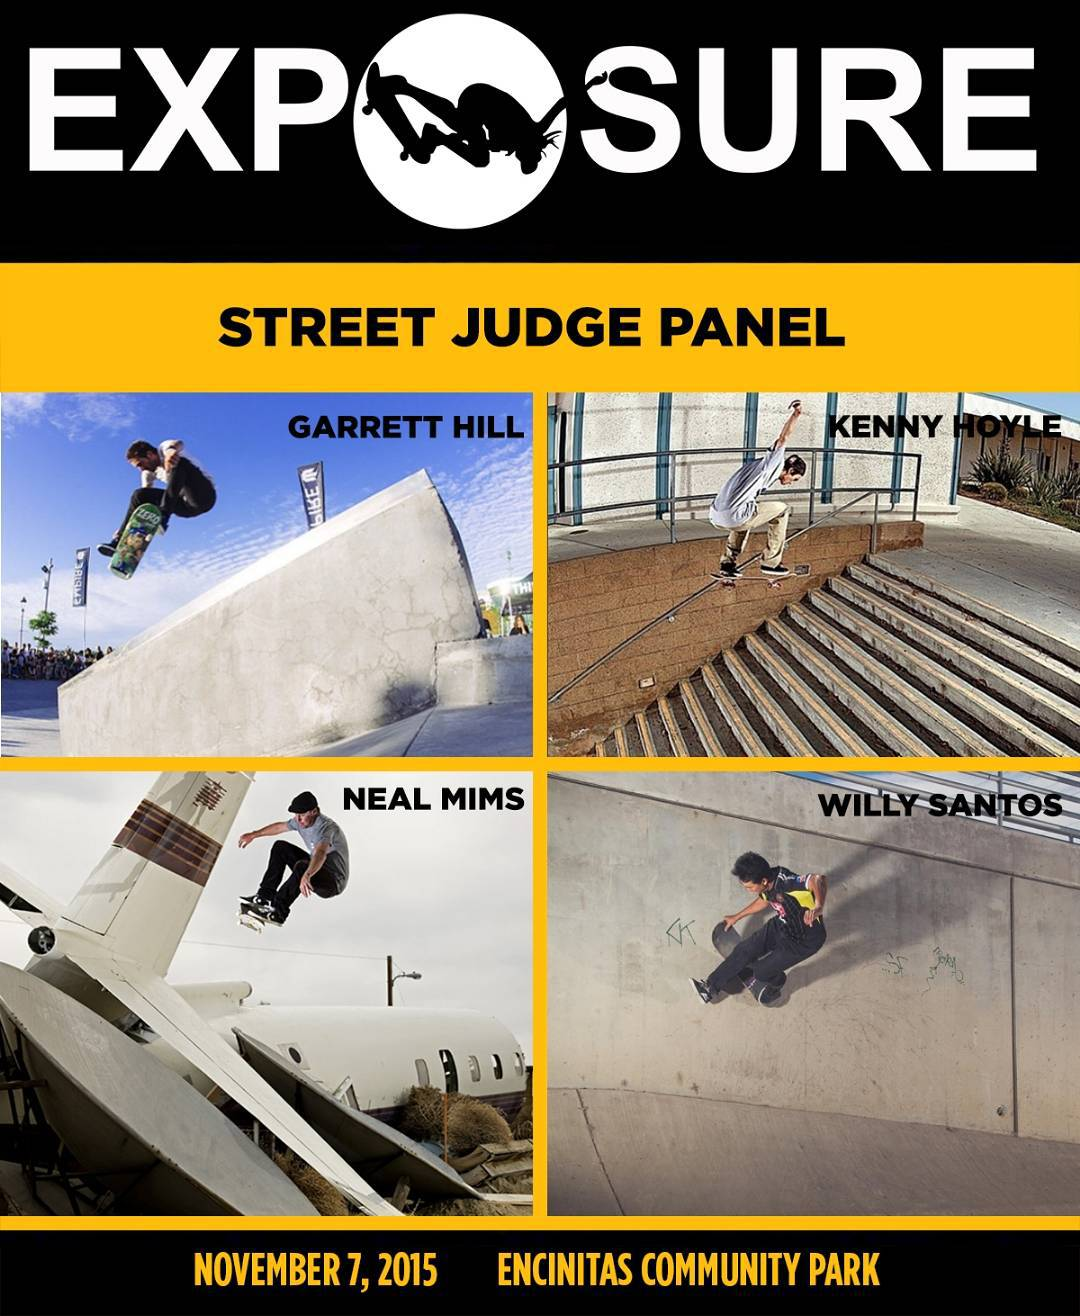 We're stoked to have legends Neal Mims (@nealmims), Garrett Hill (@garretthill), Kenny Hoyle (@kennyhoyle), and Willy Santos (@willysantos) judging the inaugural #Exposure2015 Street Contest! Photos by @jodymorrisphoto @lyanrebel @mattdaughters and...